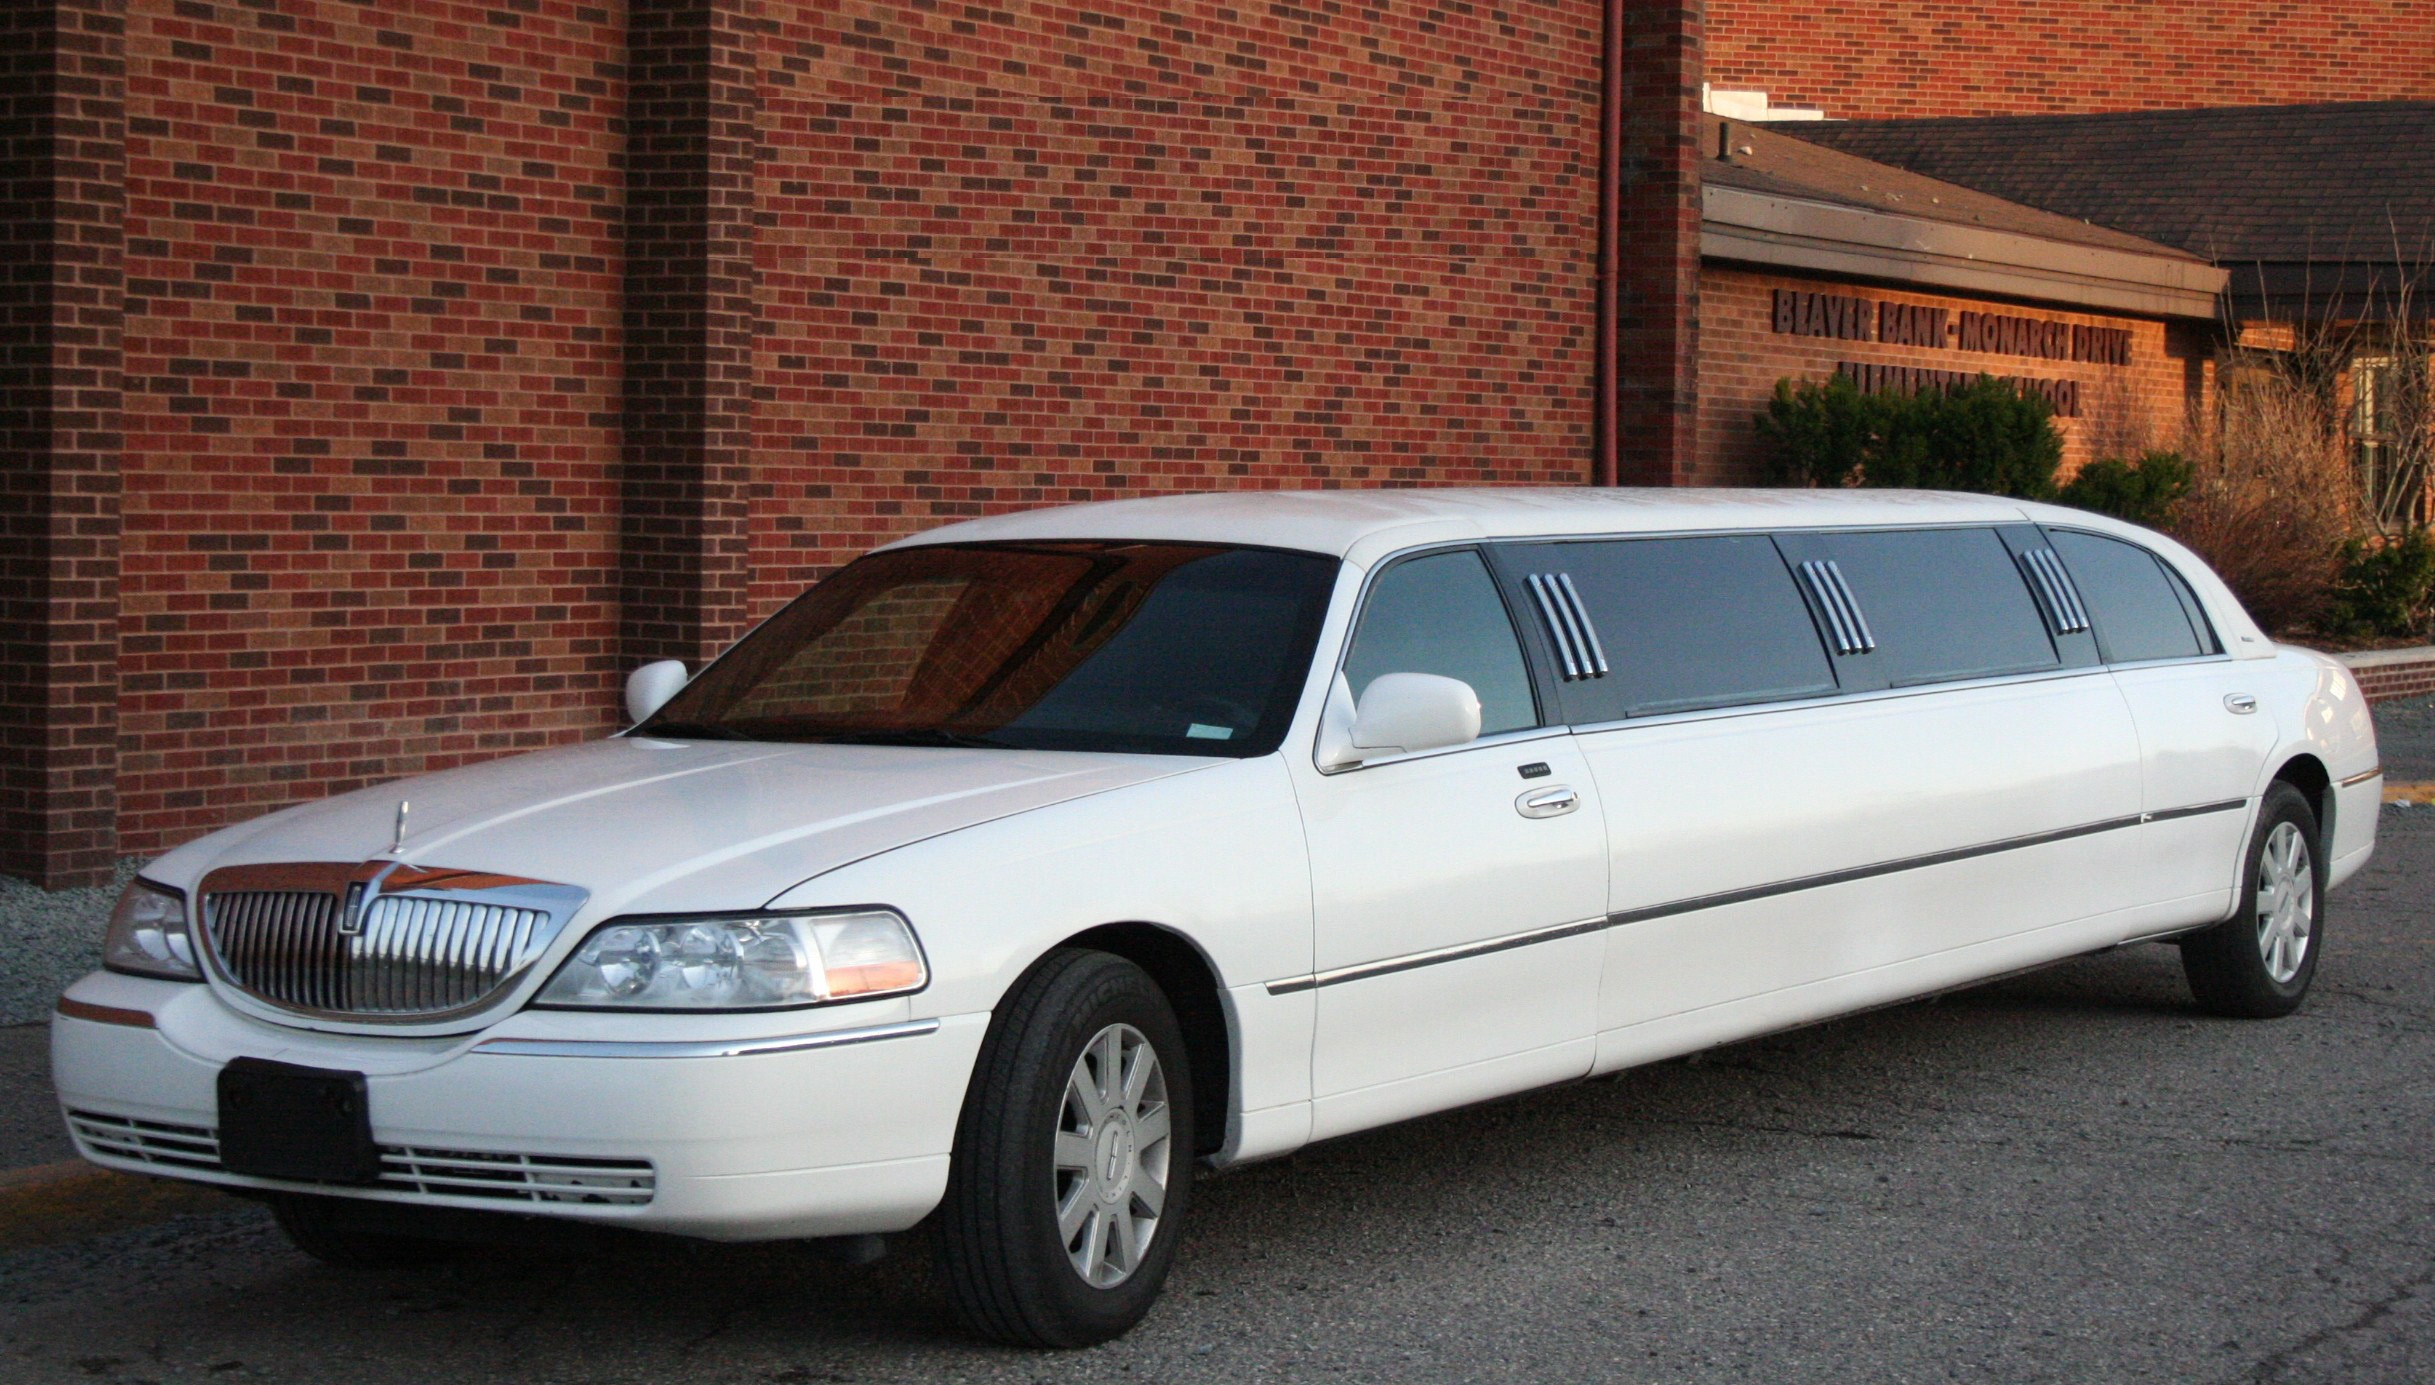 Tips on Hiring a Limo Service